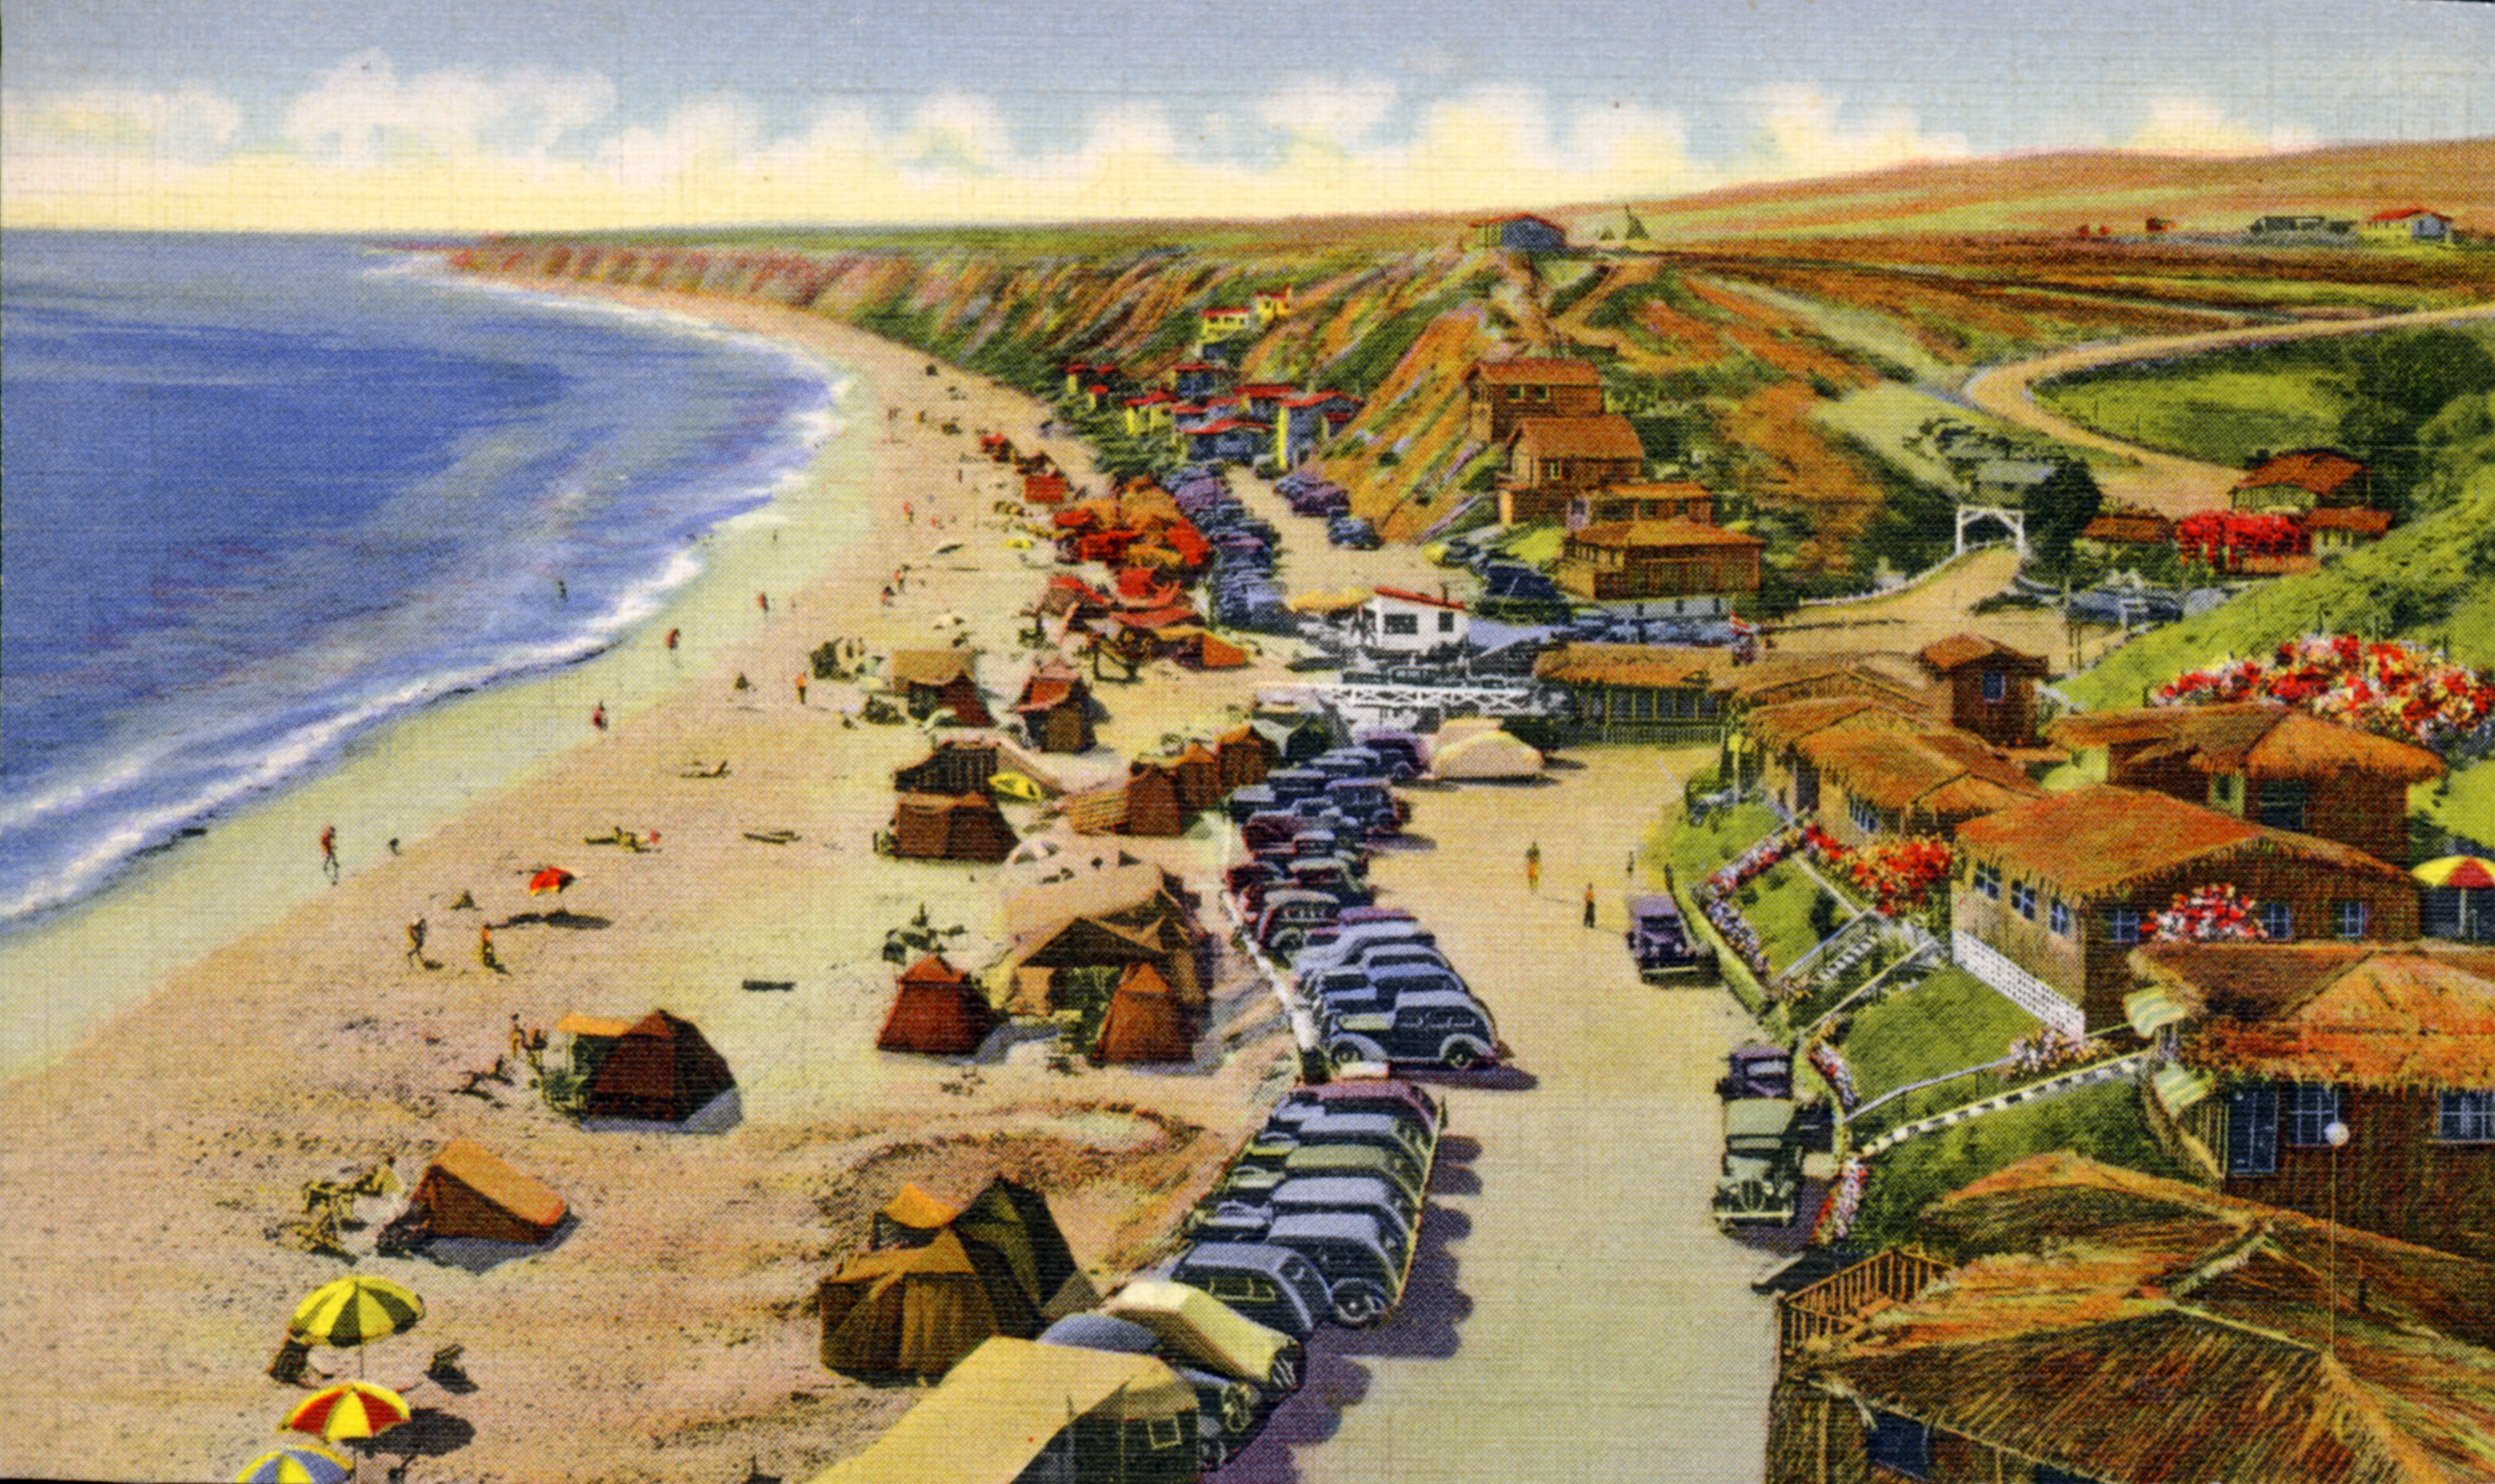 Caption: Crystal Cove in the good old days